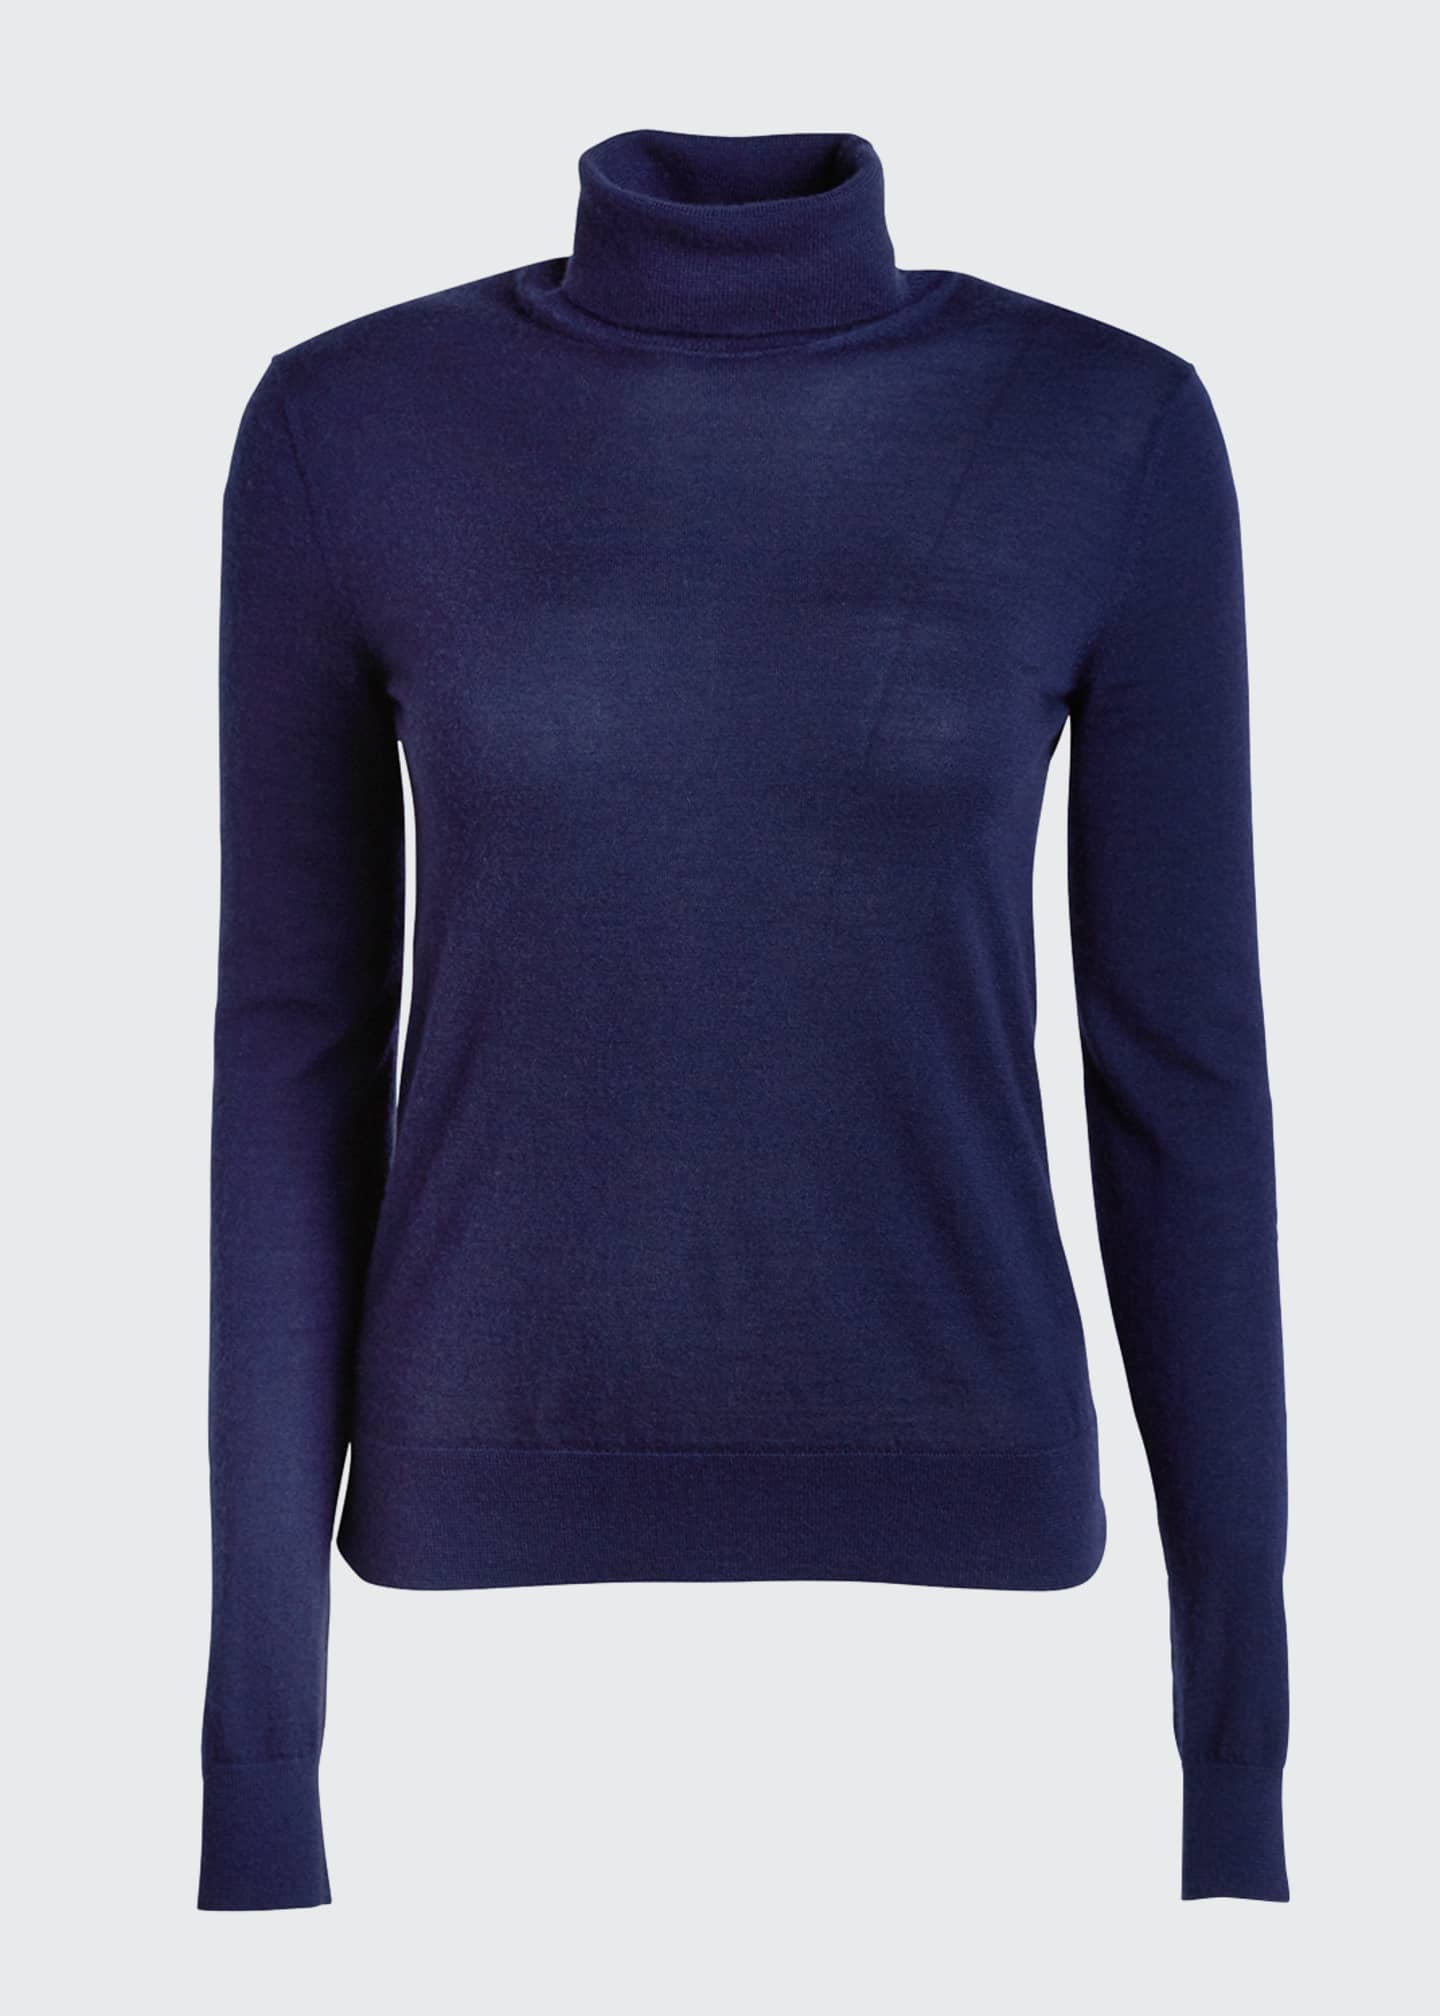 Image 5 of 5: Cashmere Turtleneck Sweater